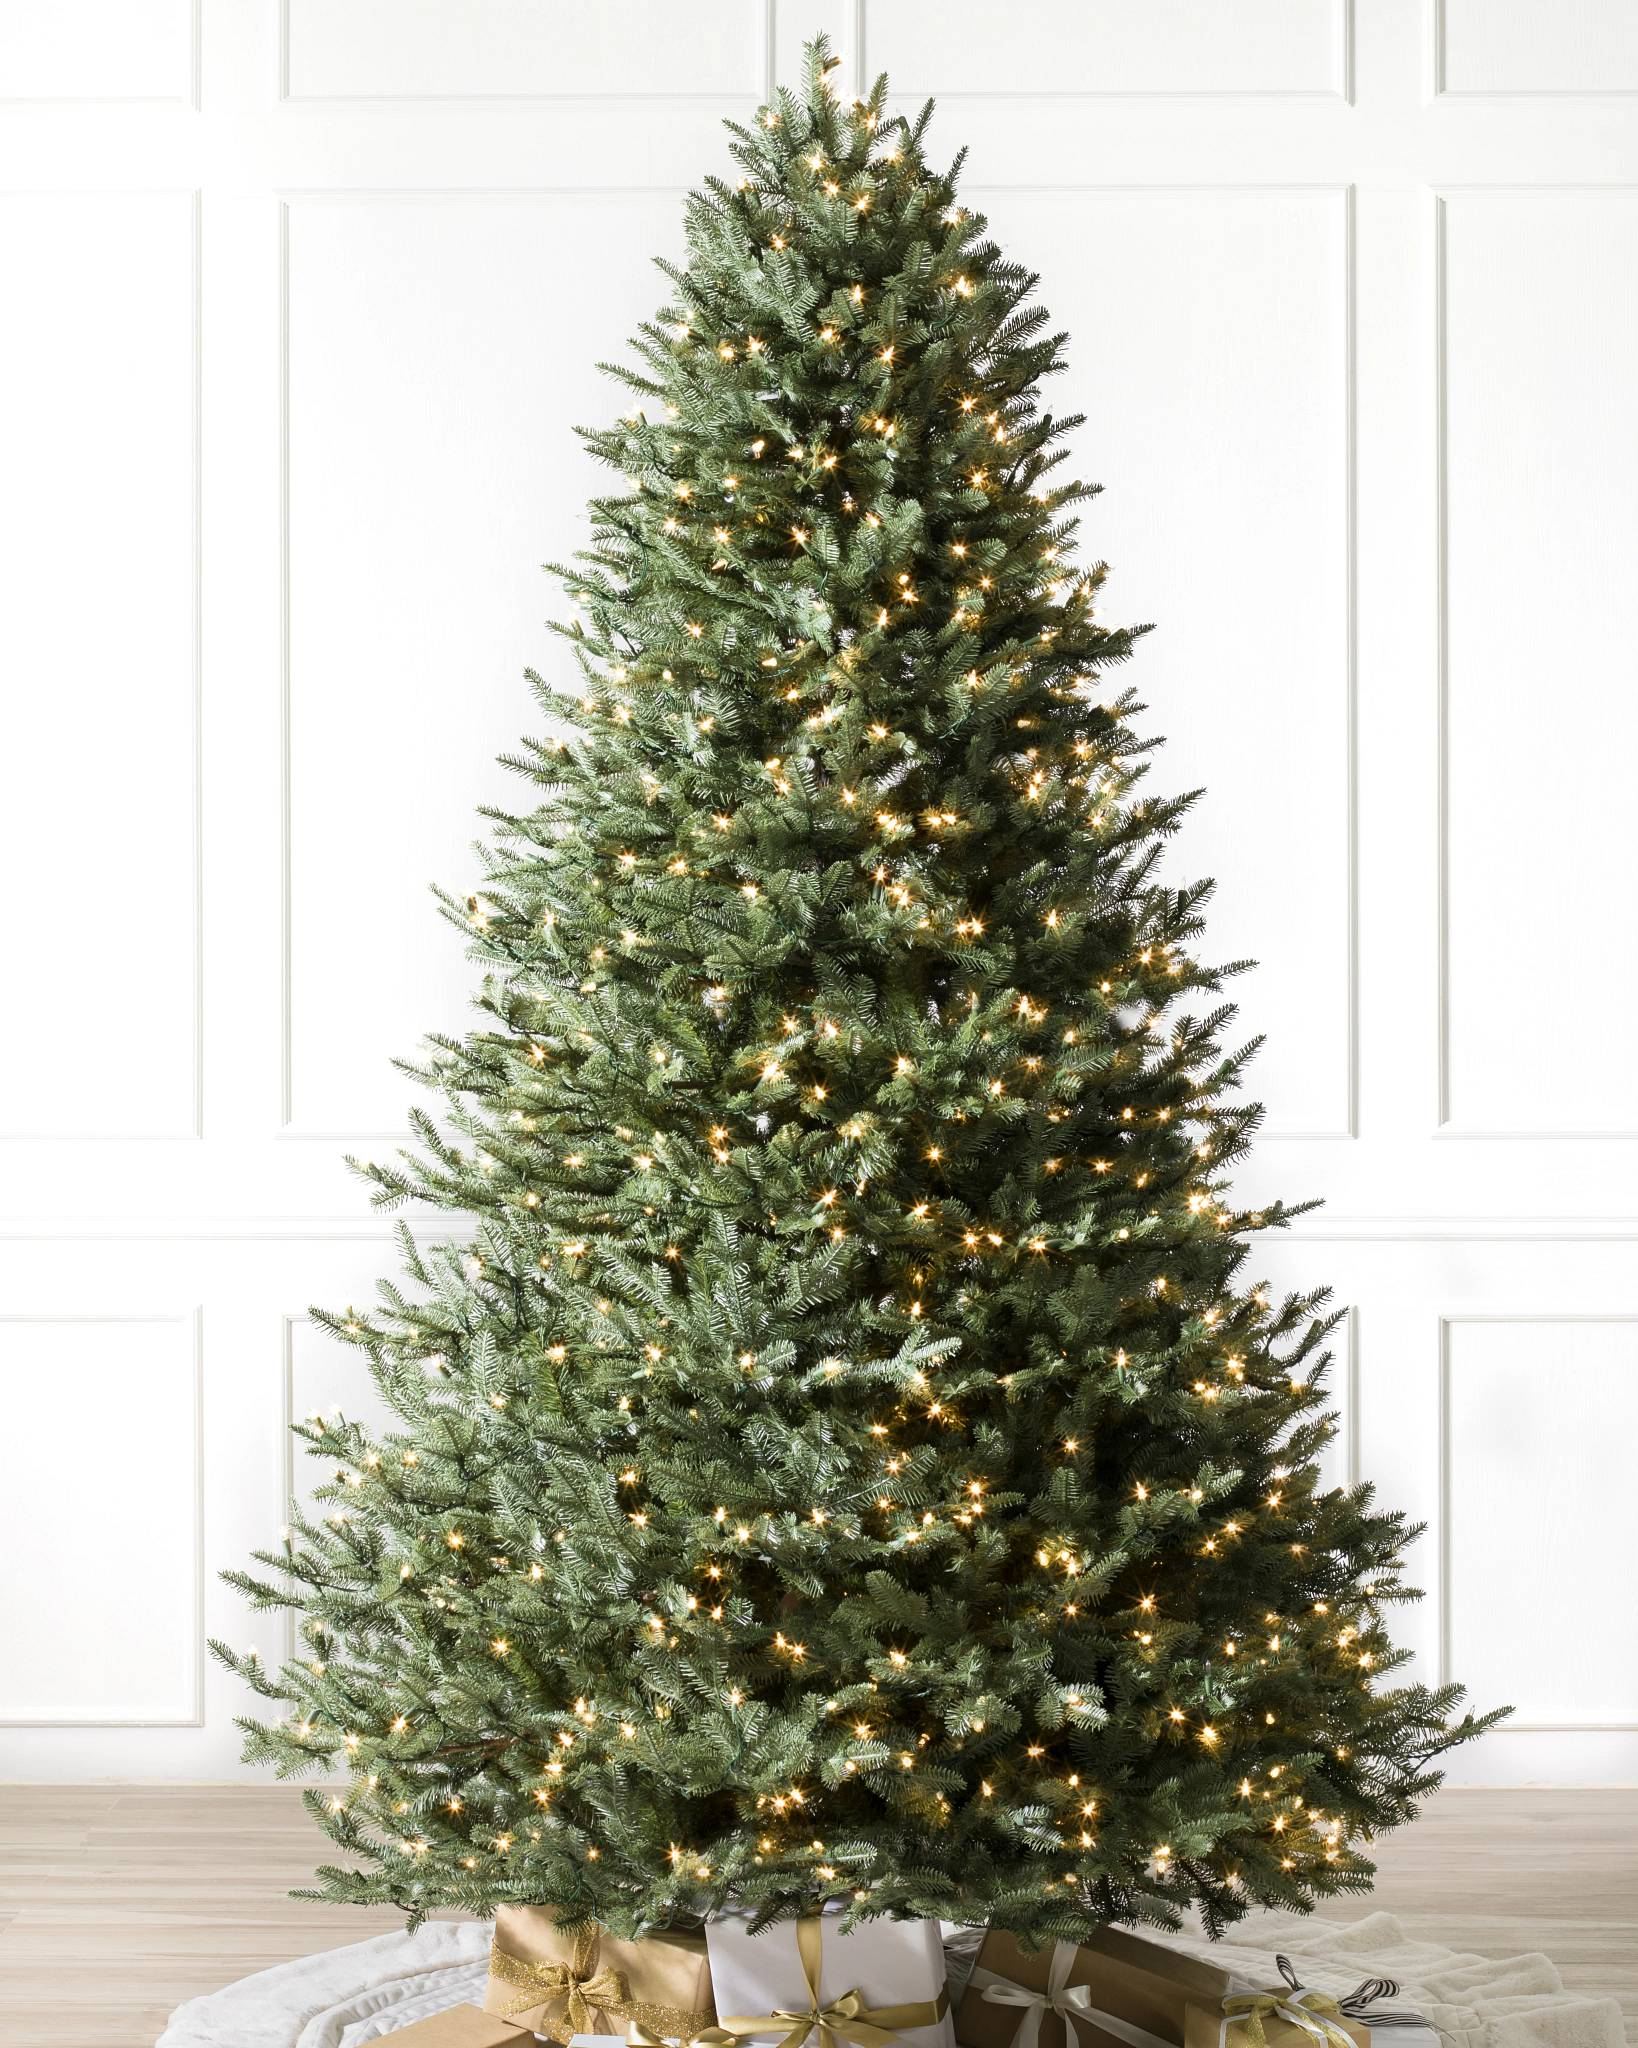 bh balsam fir tree main image - Full Artificial Christmas Trees